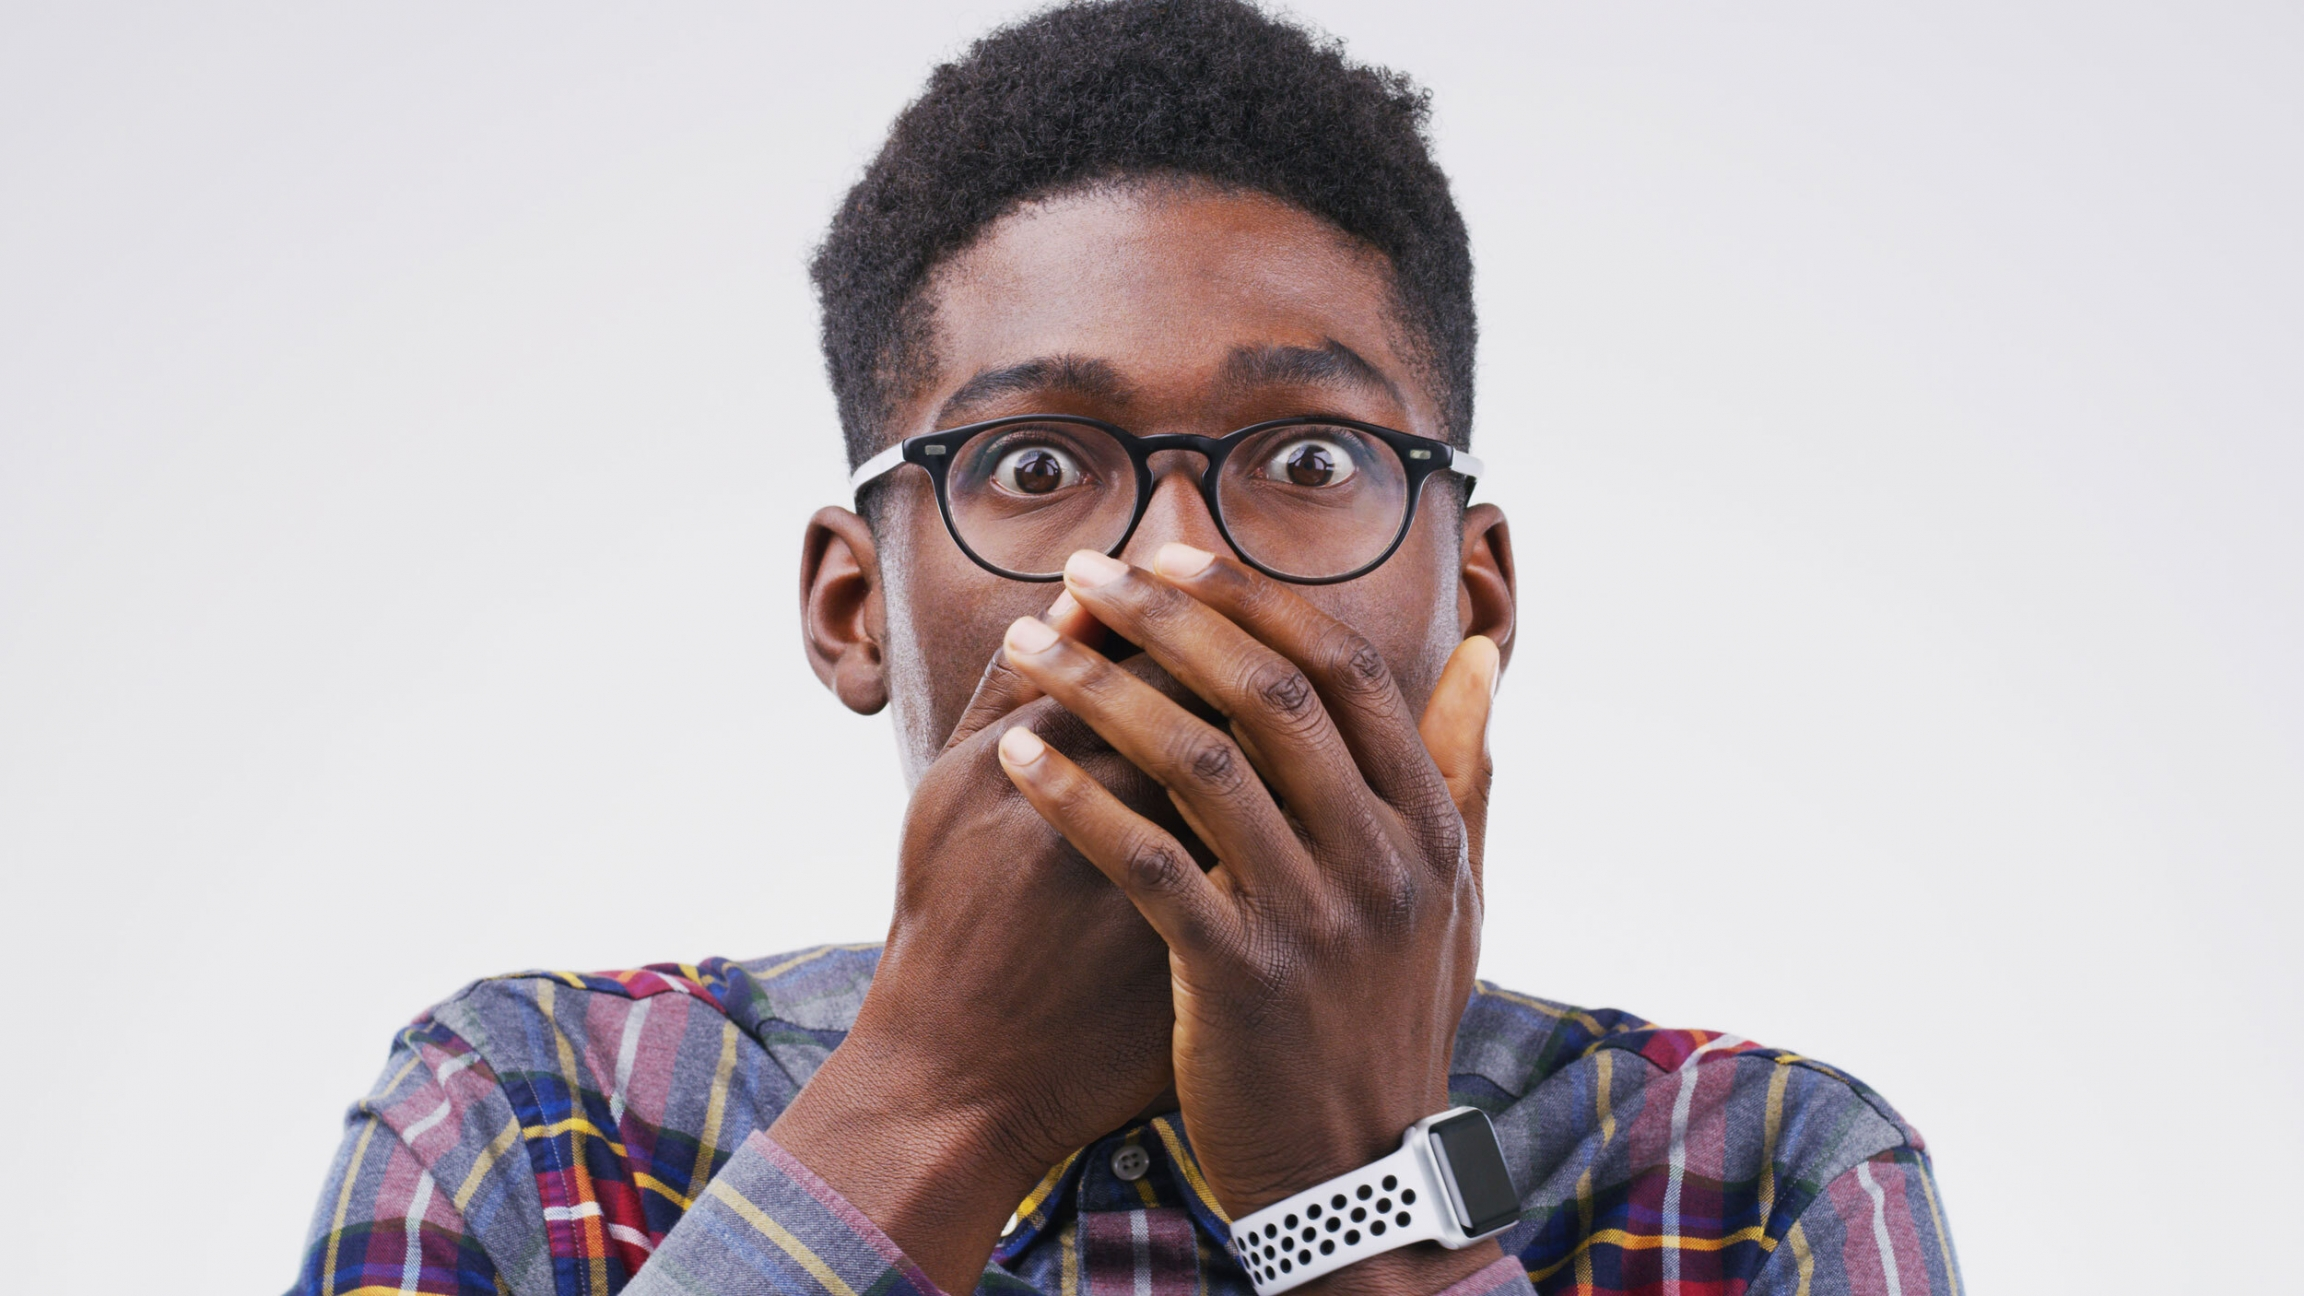 A man poses for the camera with his hands over his mouth in this stock photo